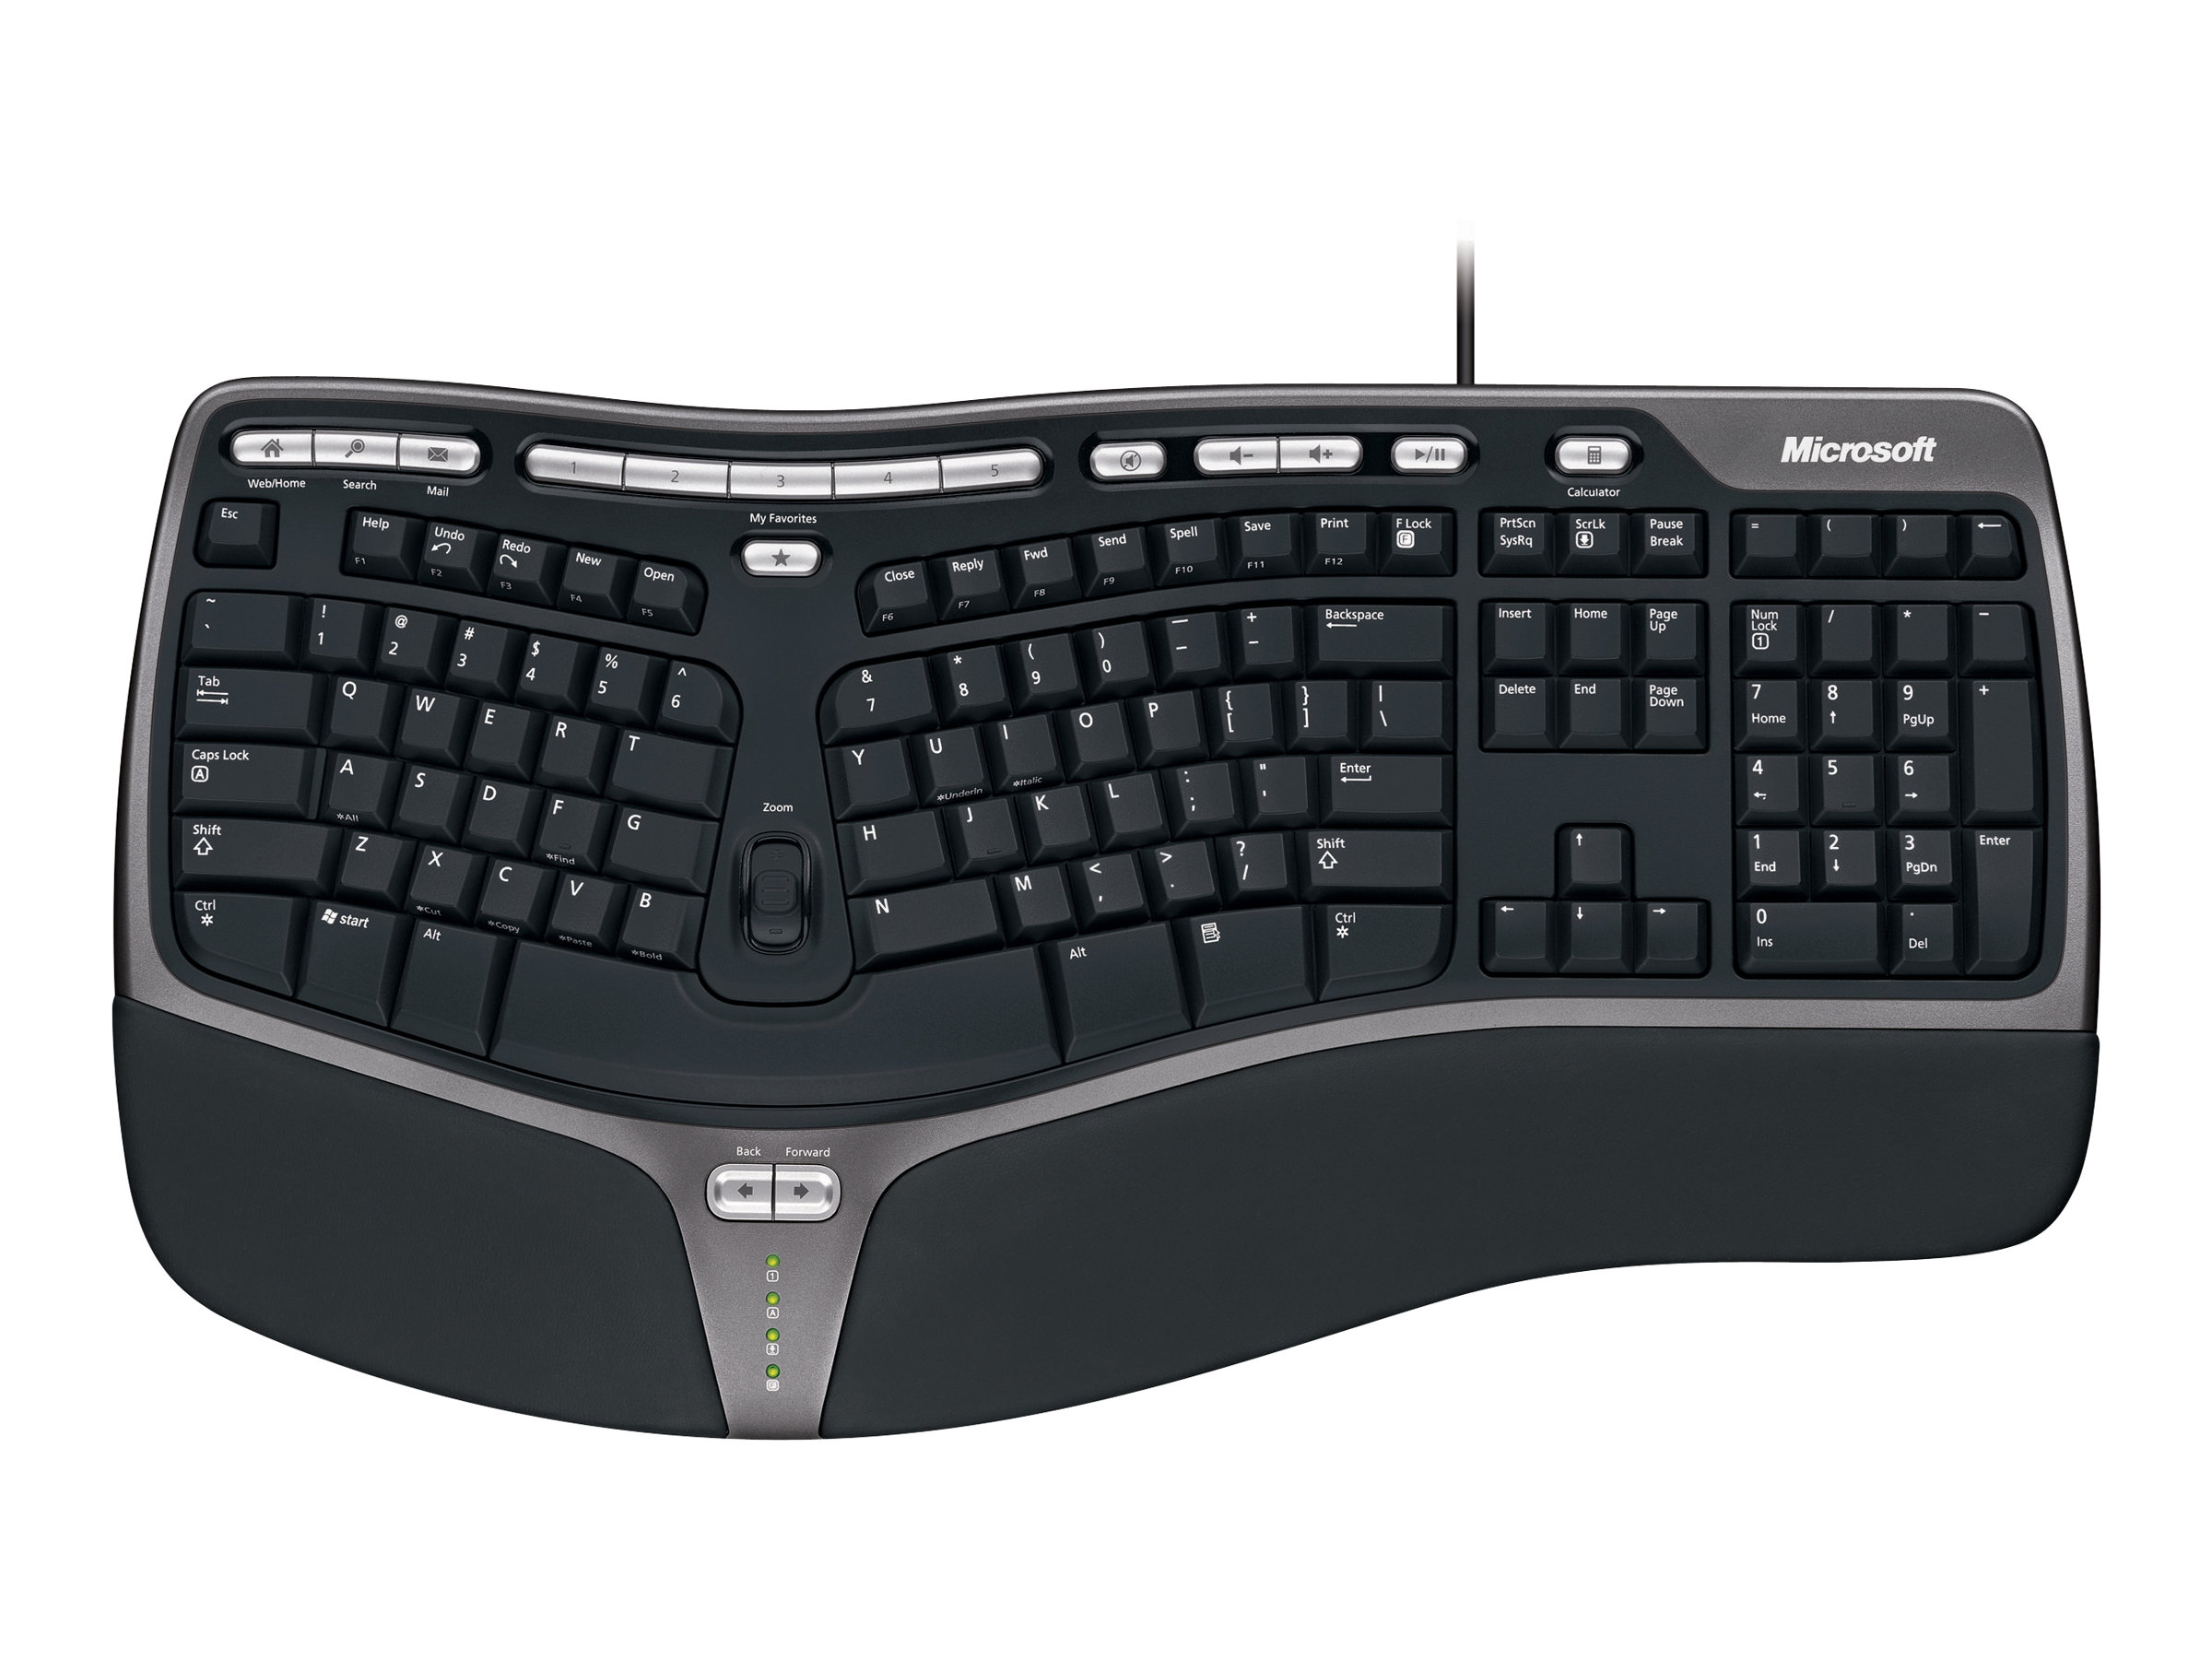 Microsoft Natural Ergonomic Keyboard 4000 - Tastatur - USB - Deutsch